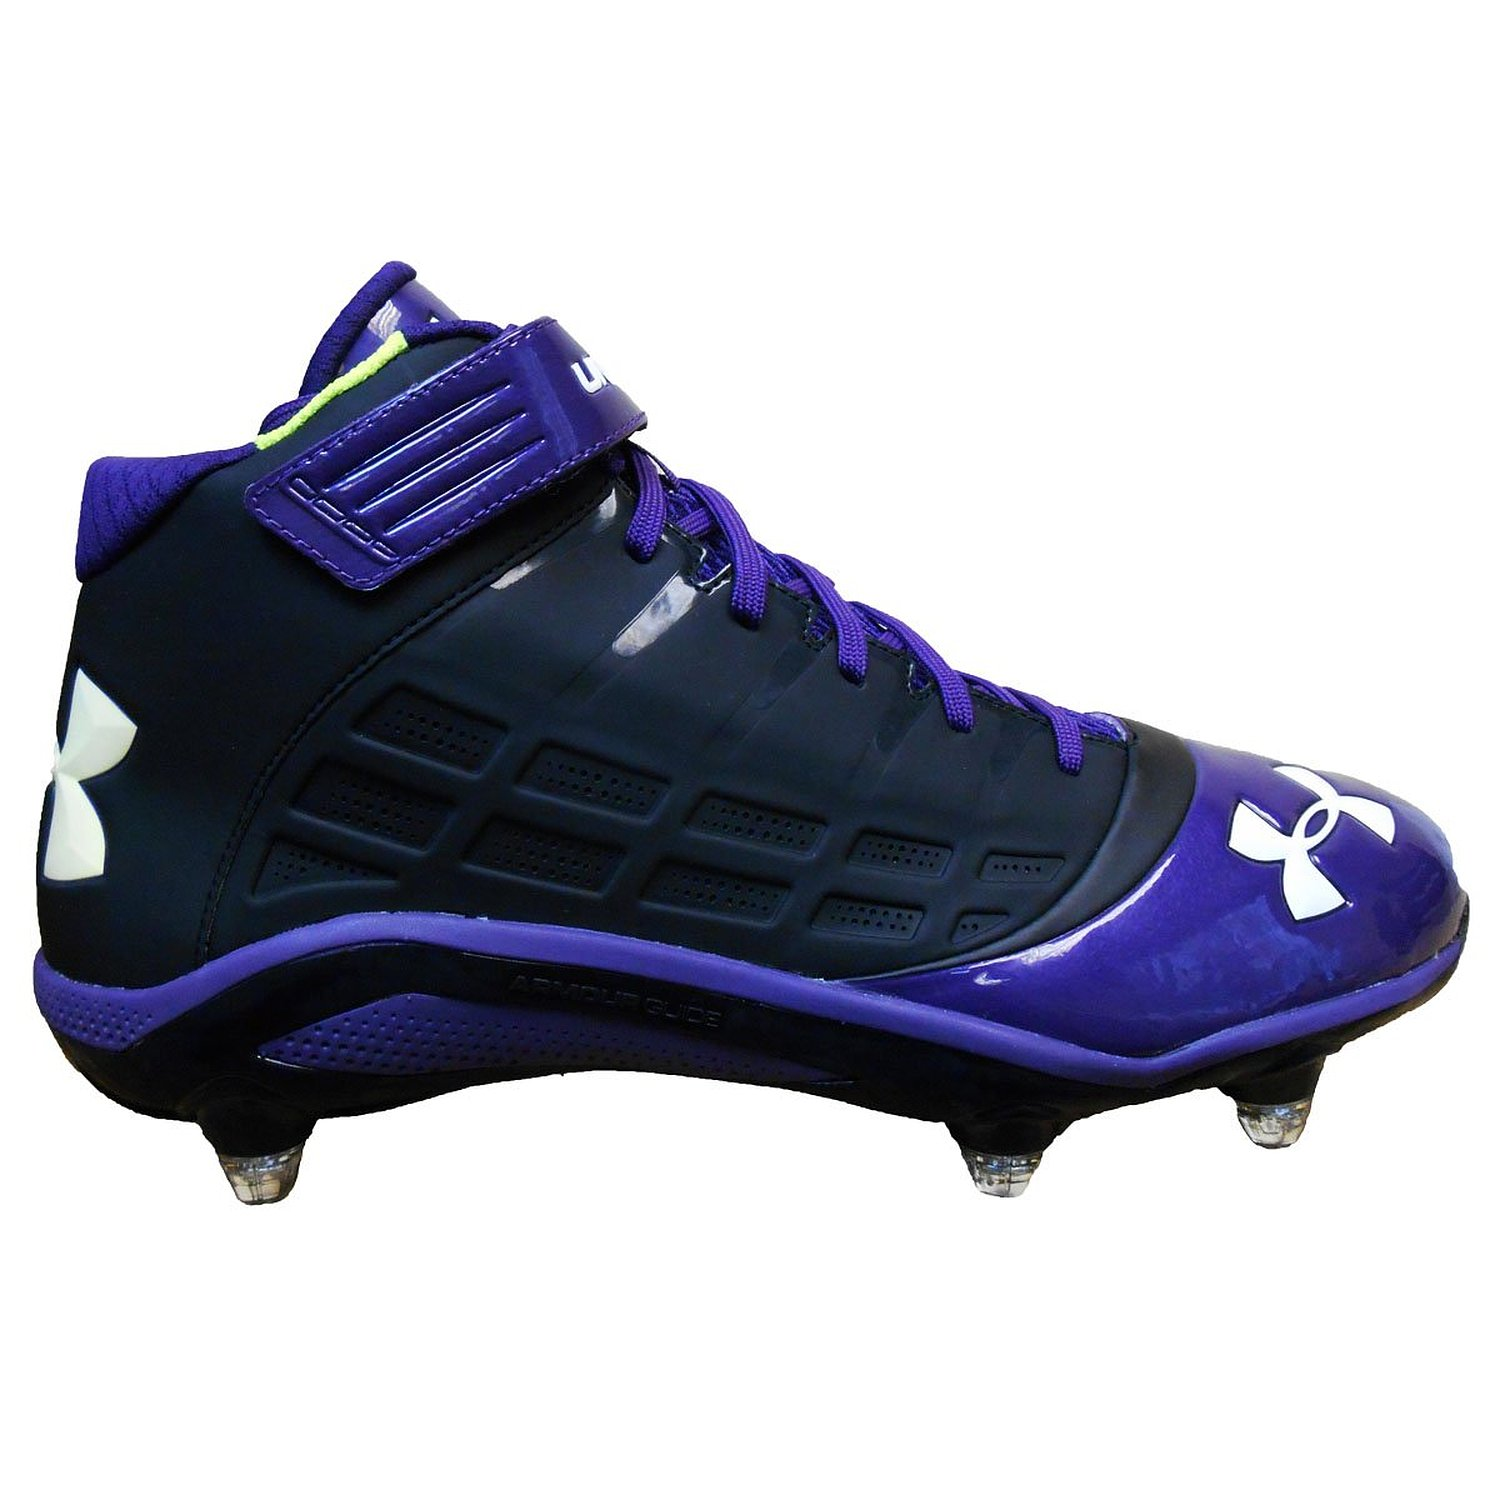 innovative design 8a690 42f14 Get Quotations · Under Armour Men s Team Fierce D Football Cleats